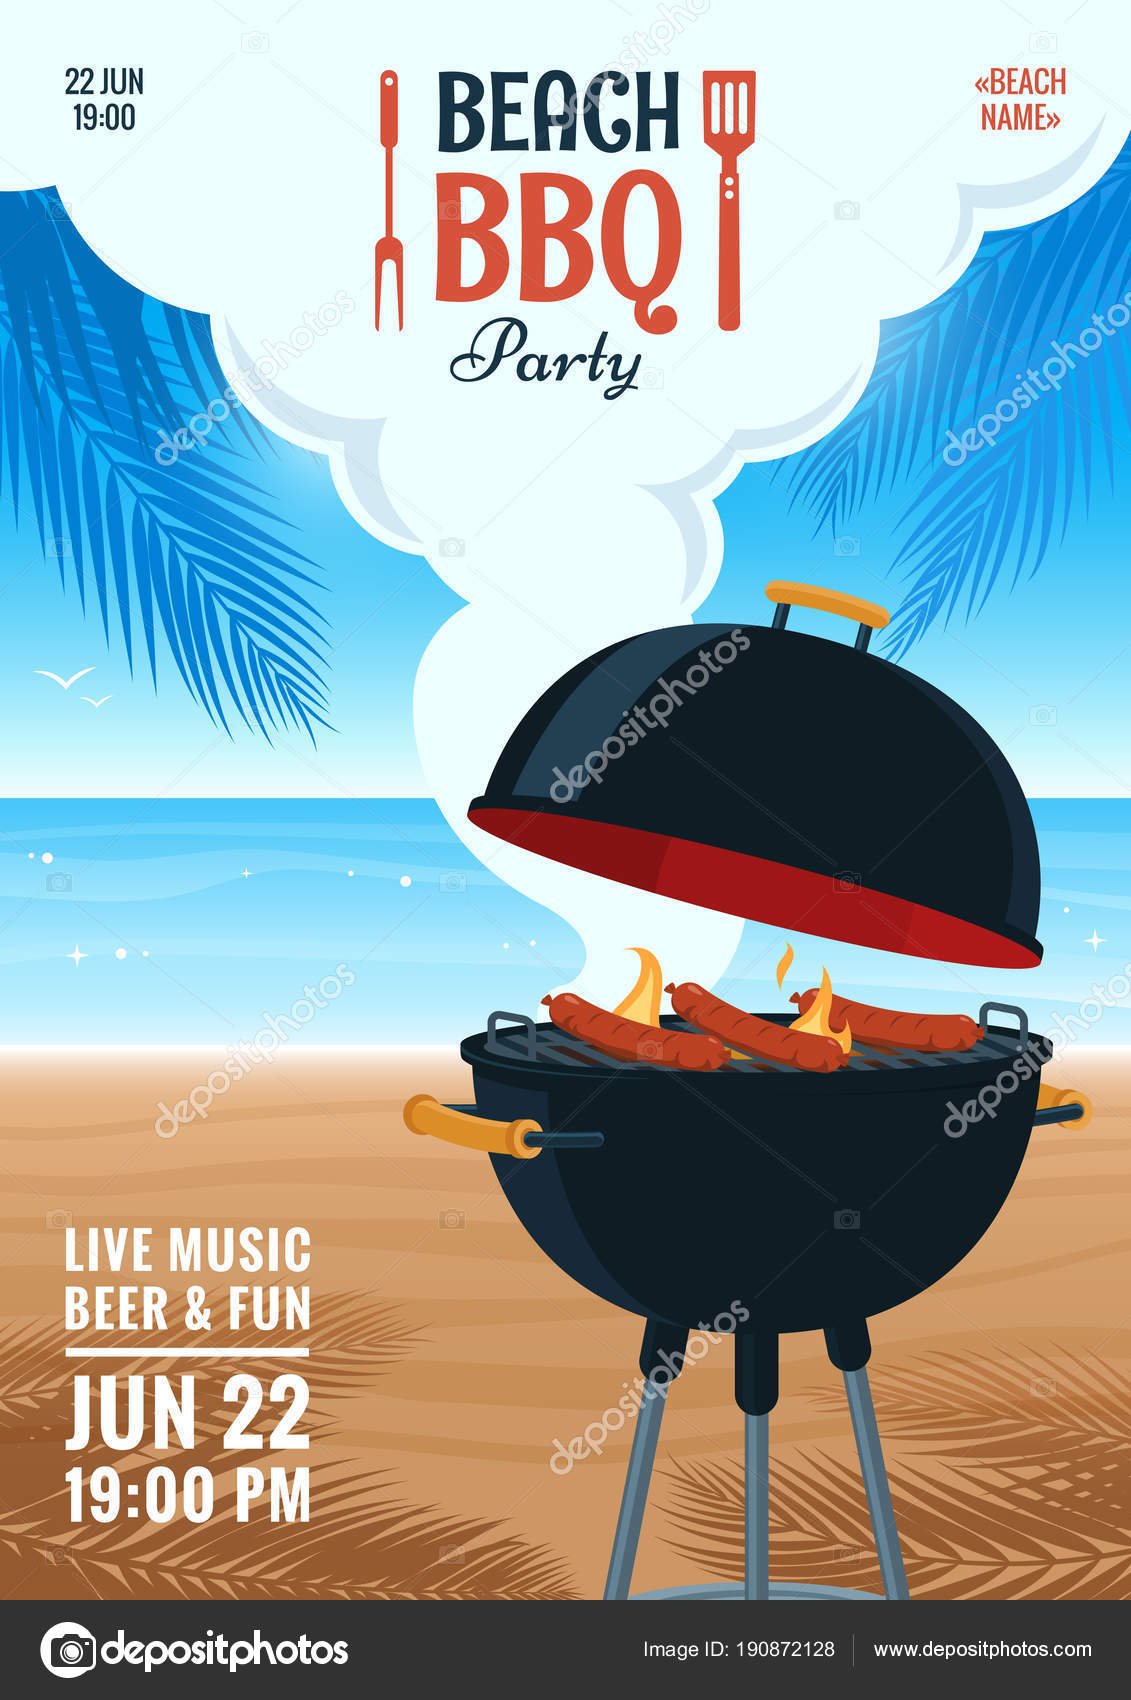 beach barbecue party invitation summer bbq party flyer grill